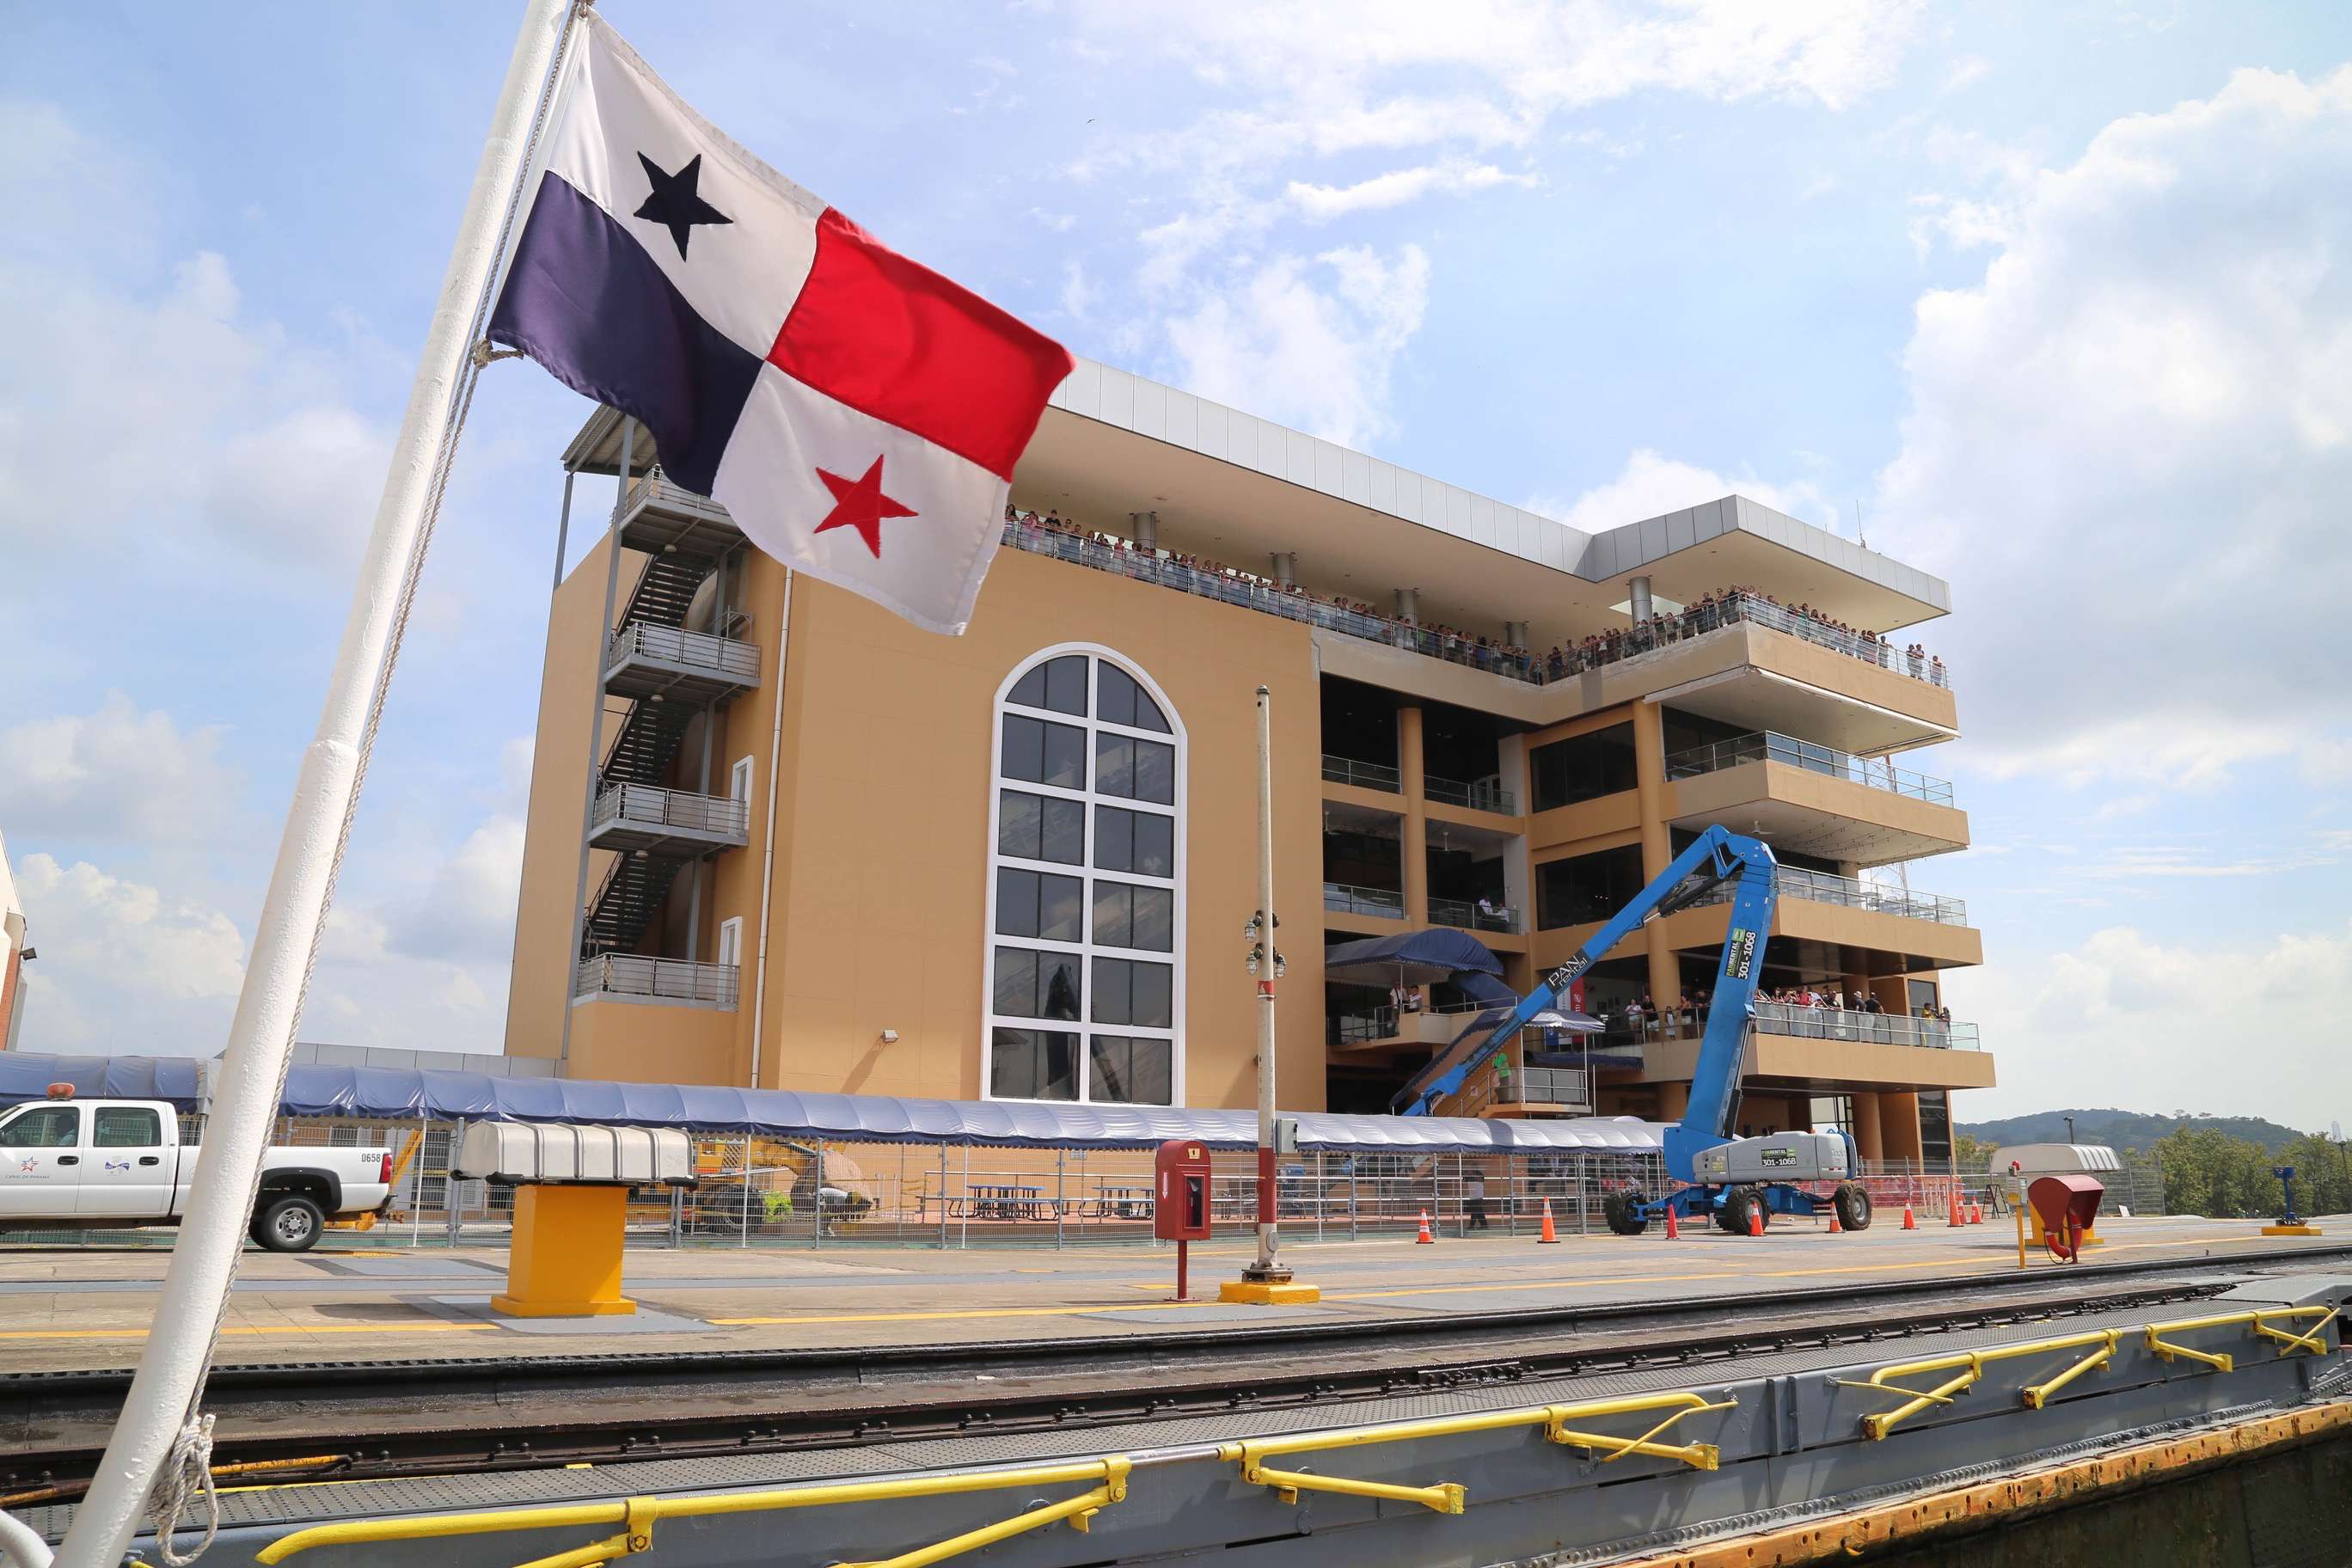 The Miraflores Visitor Center at the Panama Canal offers sweeping views of the canal.